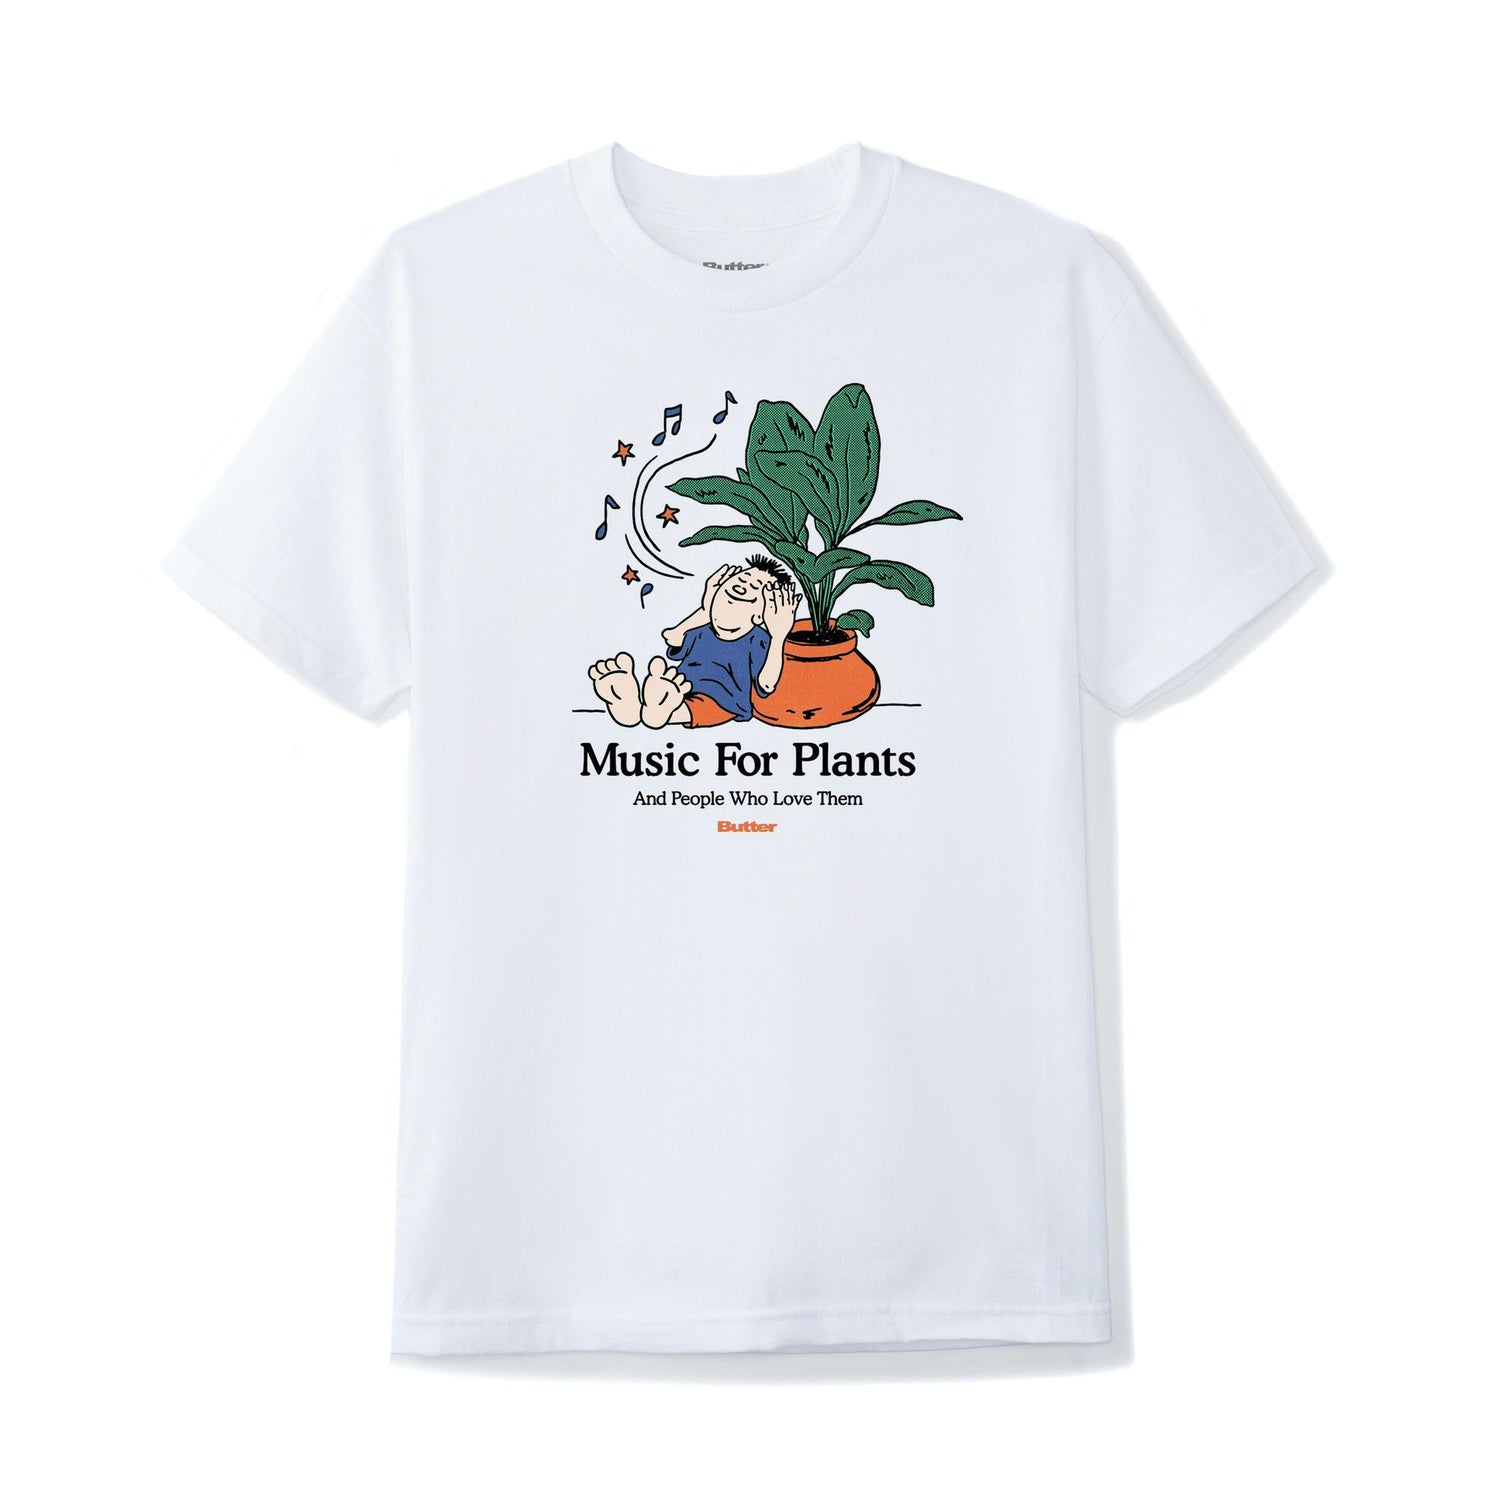 Music For Plants Tee, White